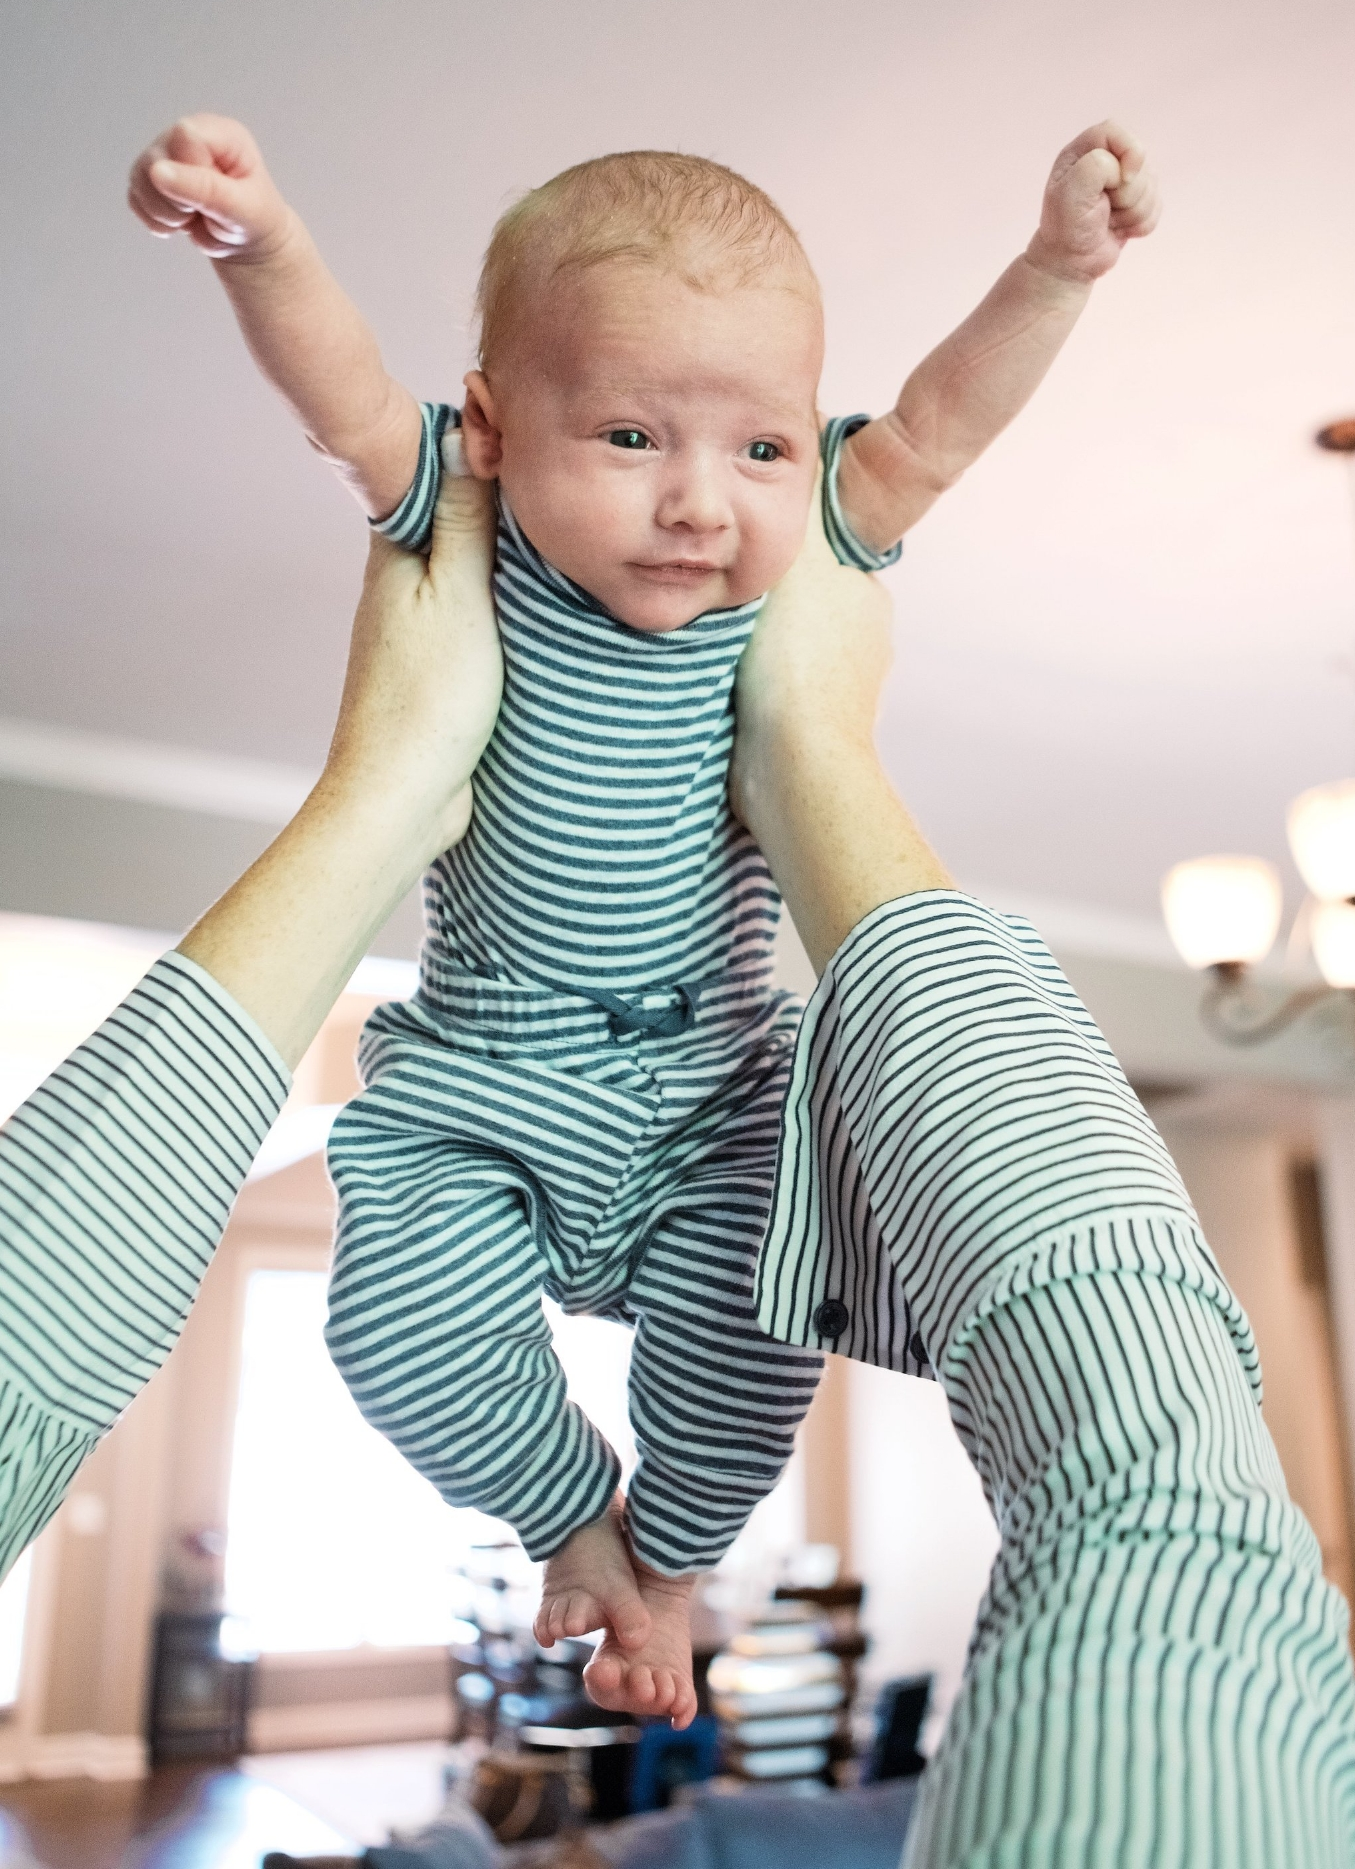 Baby Outfit =  BabyGap  Mama Outfit:  Joie  How long can I keep twinning our outfits :)?